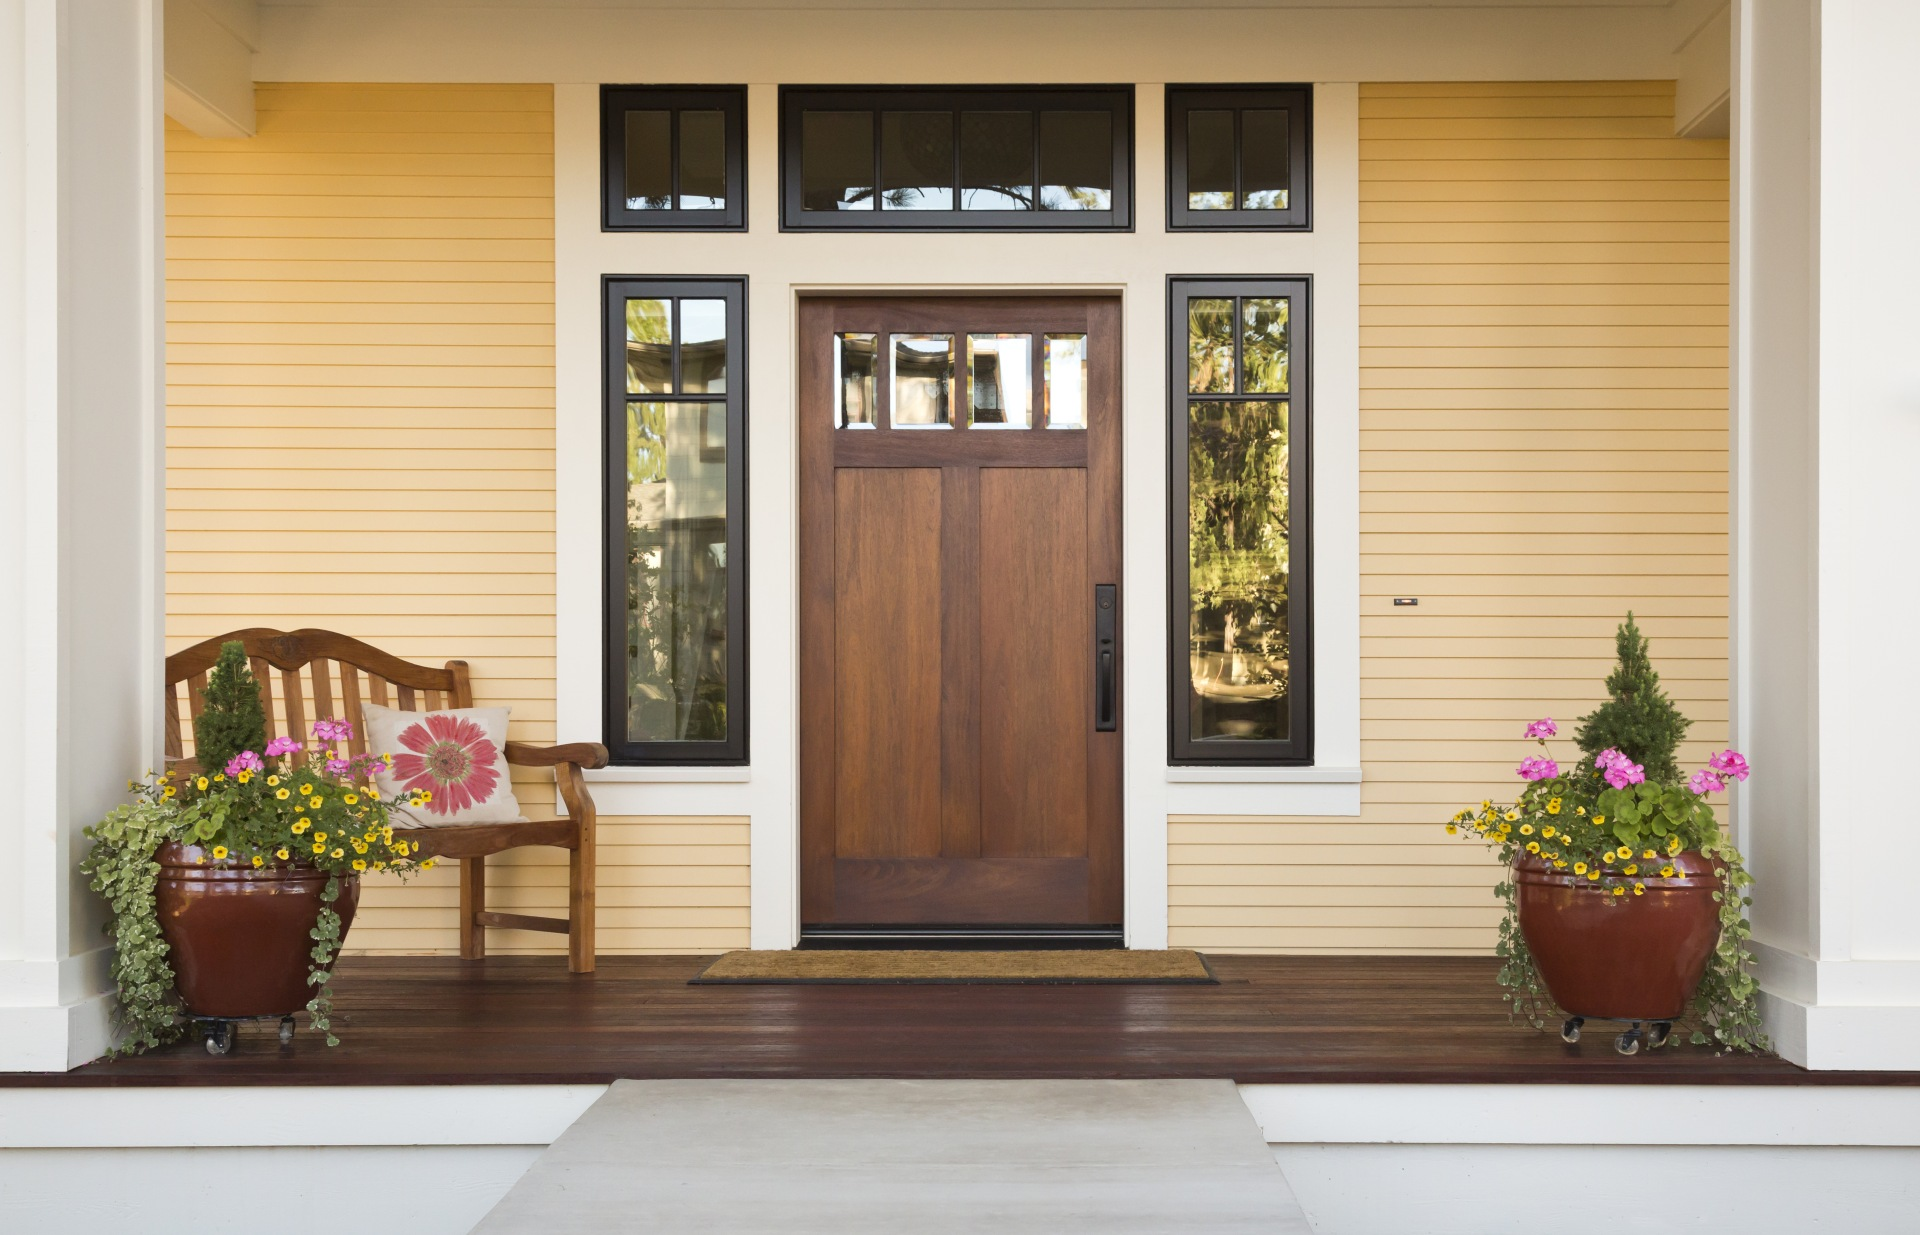 Curb Appeal 101: Enhance Your Front Door and Stoop